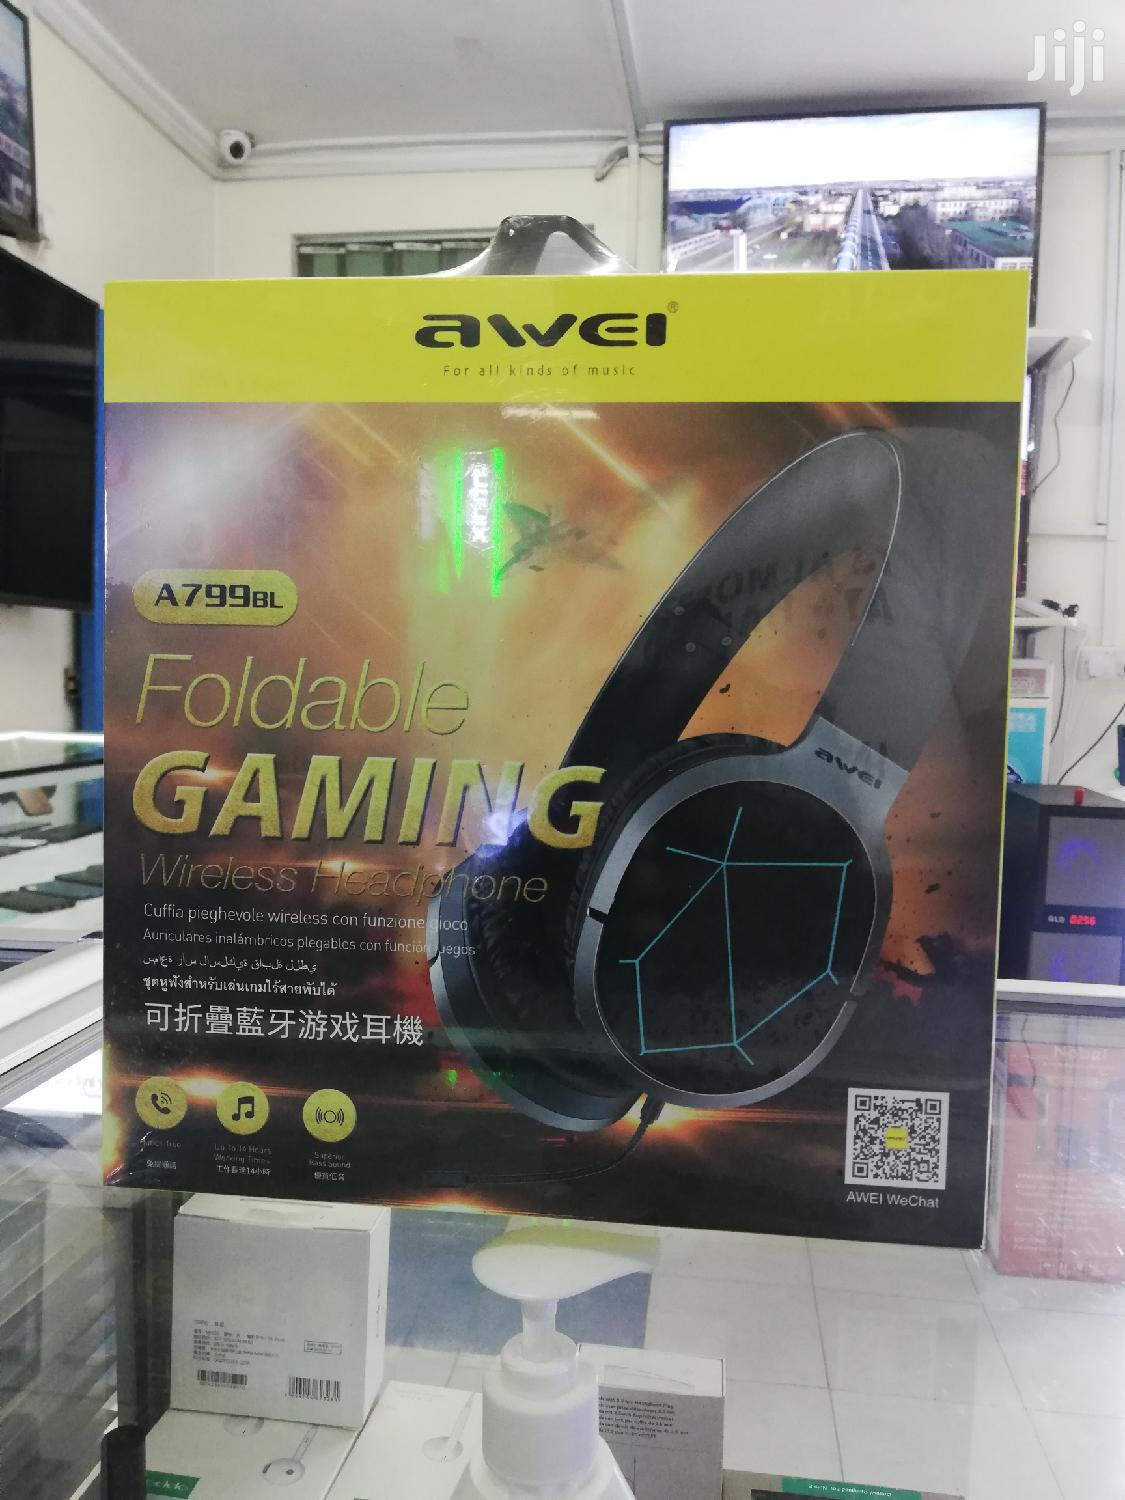 Awei A799 Bl Foldable Gaming Headphones